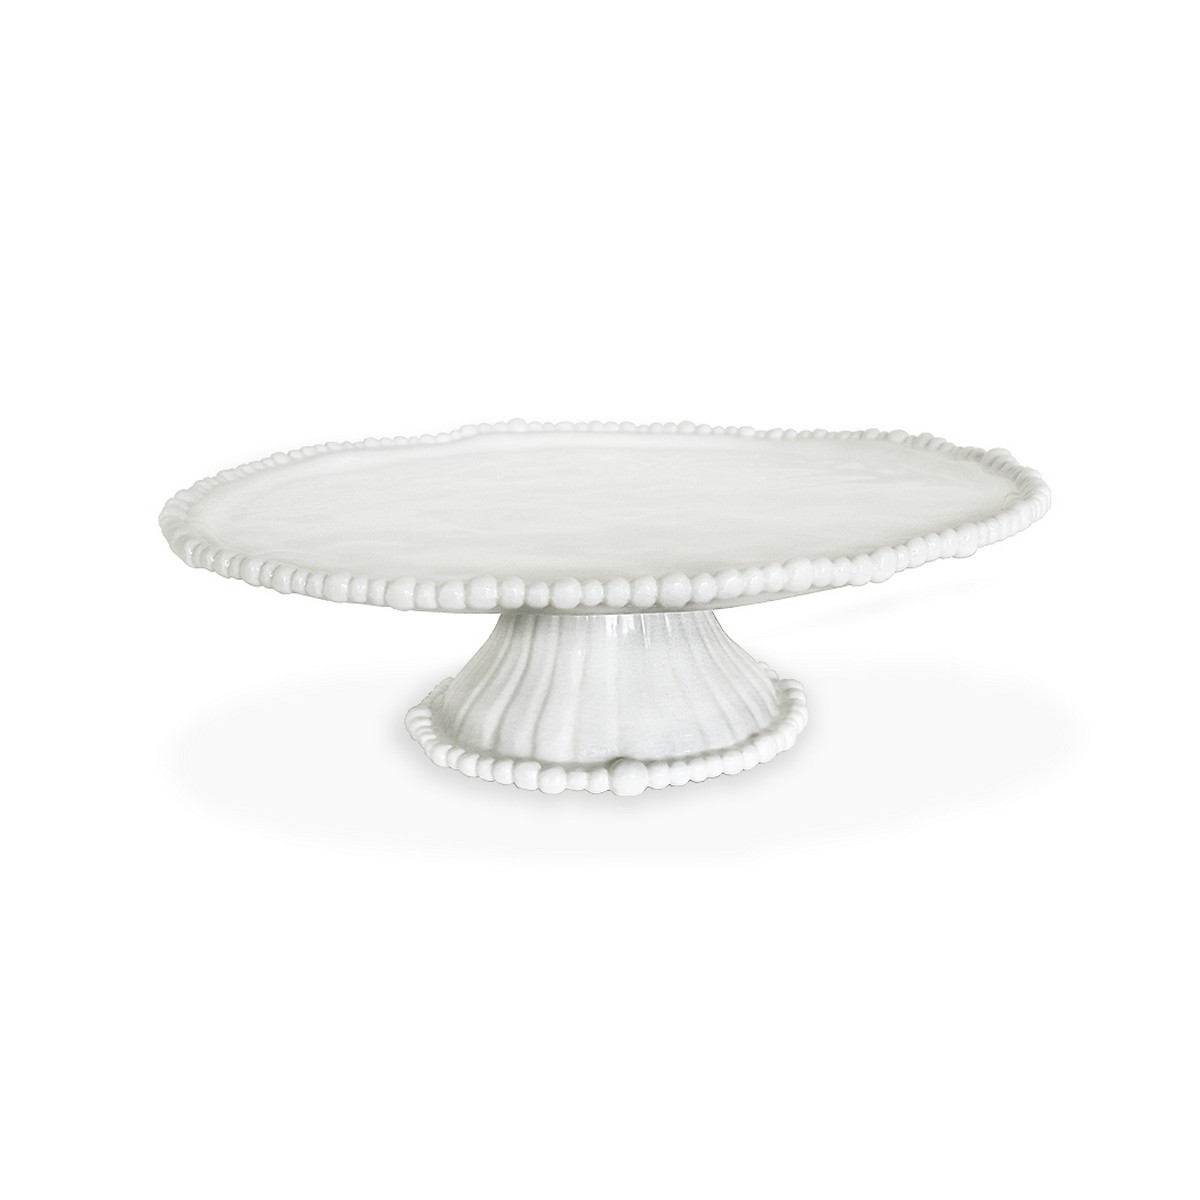 sc 1 st  The Addison Collection & Beatriz Ball Vida Alegria Pedestal Cake Plate White